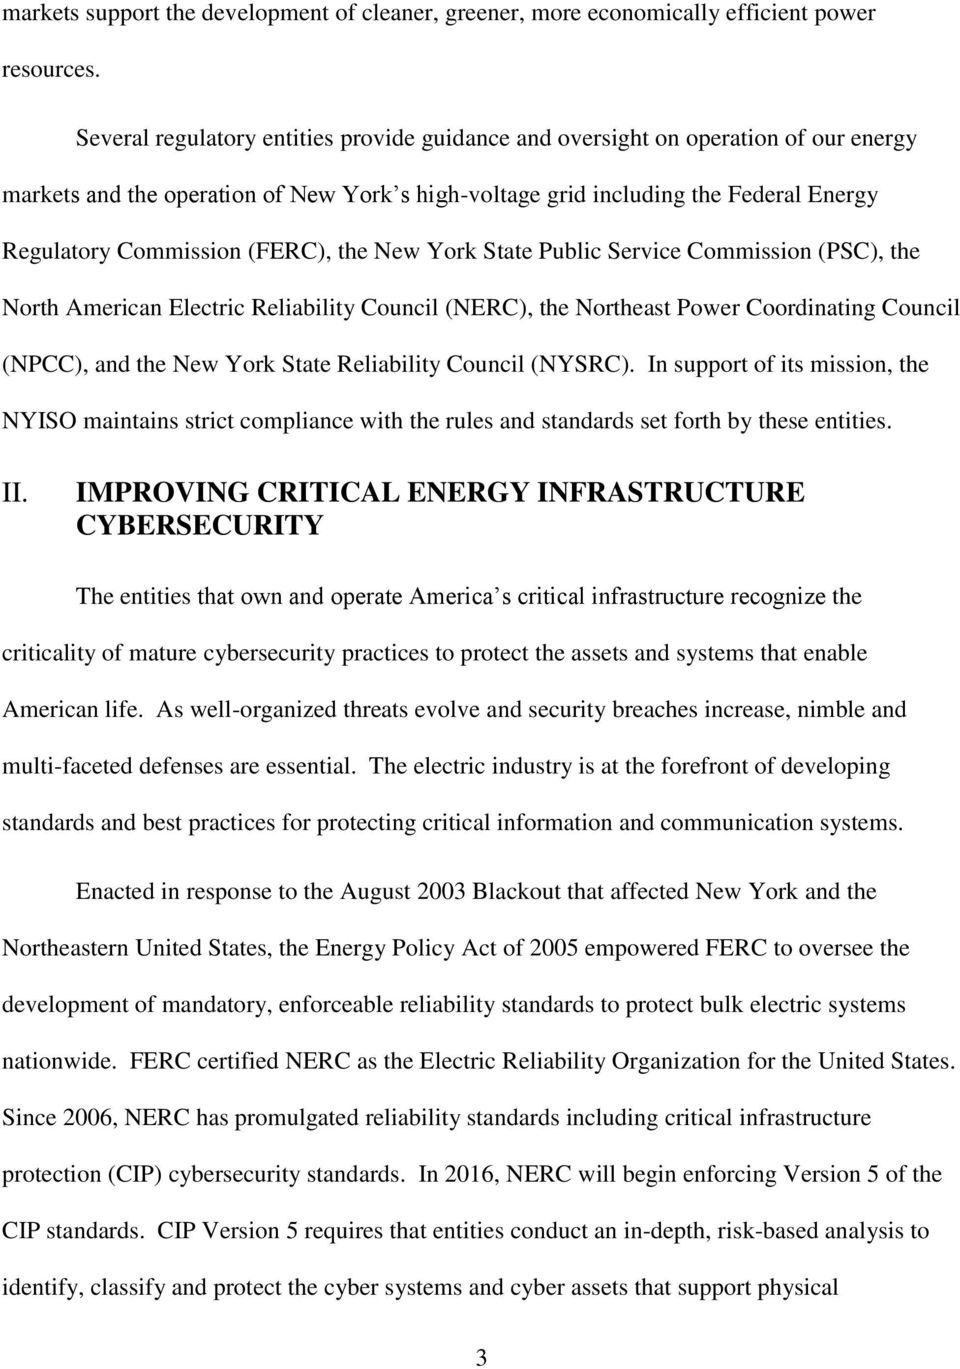 (FERC), the New York State Public Service Commission (PSC), the North American Electric Reliability Council (NERC), the Northeast Power Coordinating Council (NPCC), and the New York State Reliability